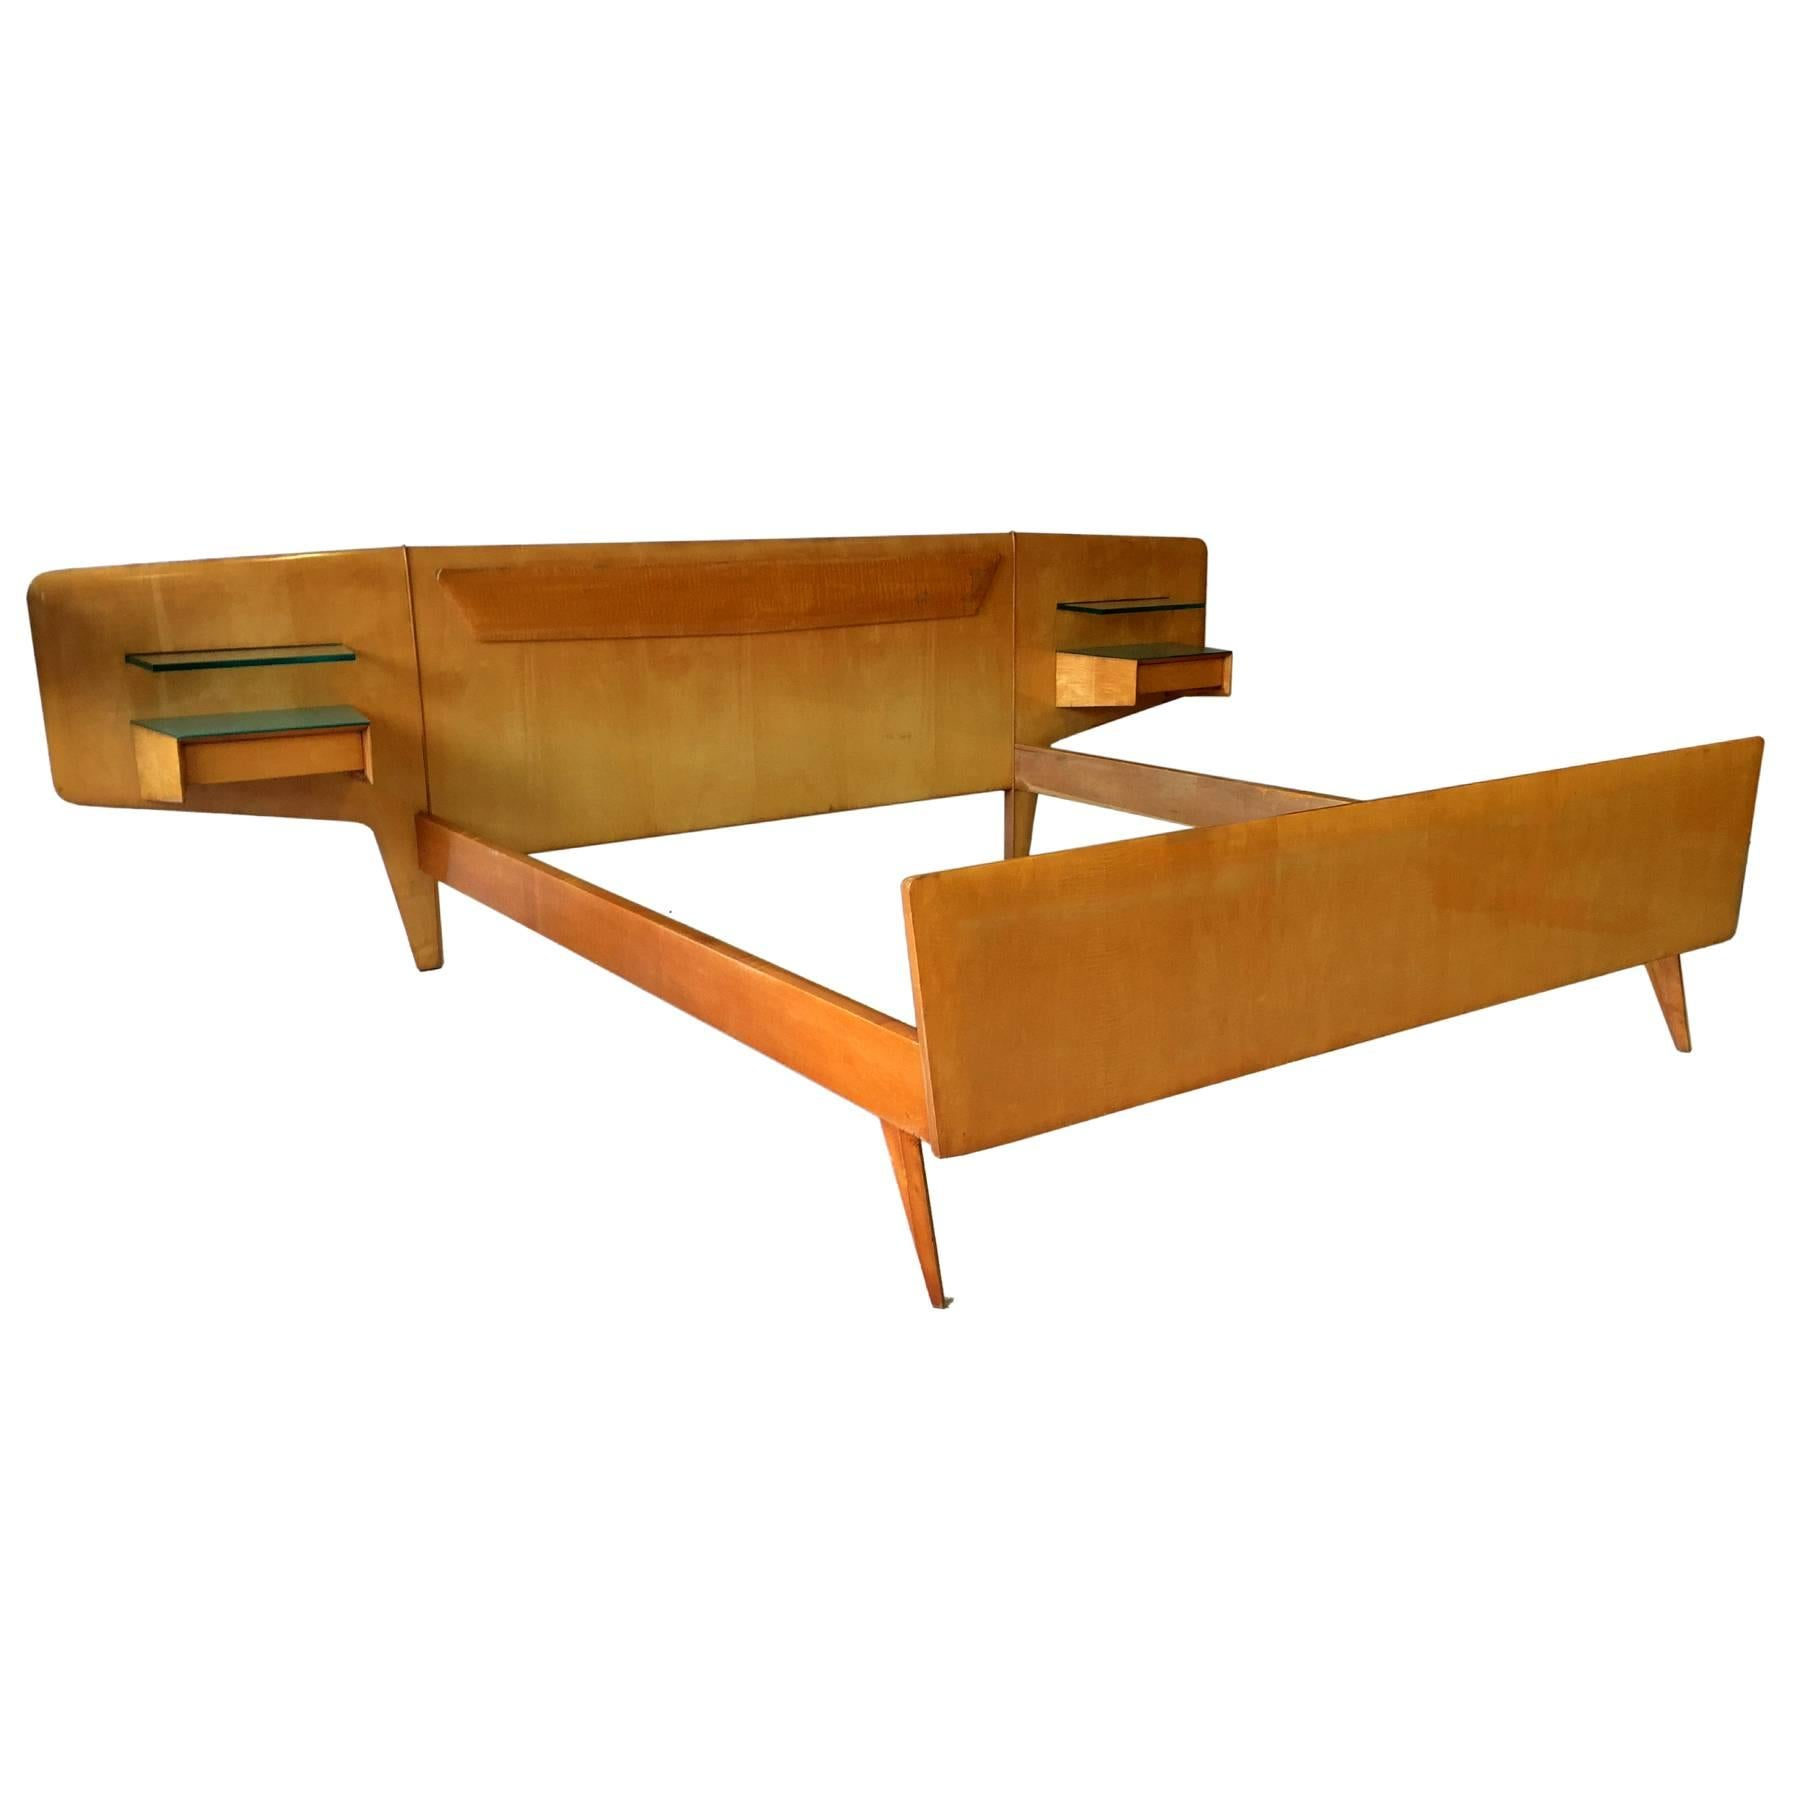 midcentury modern italian bed and nightstands by vittorio u0026amp plinio dassi